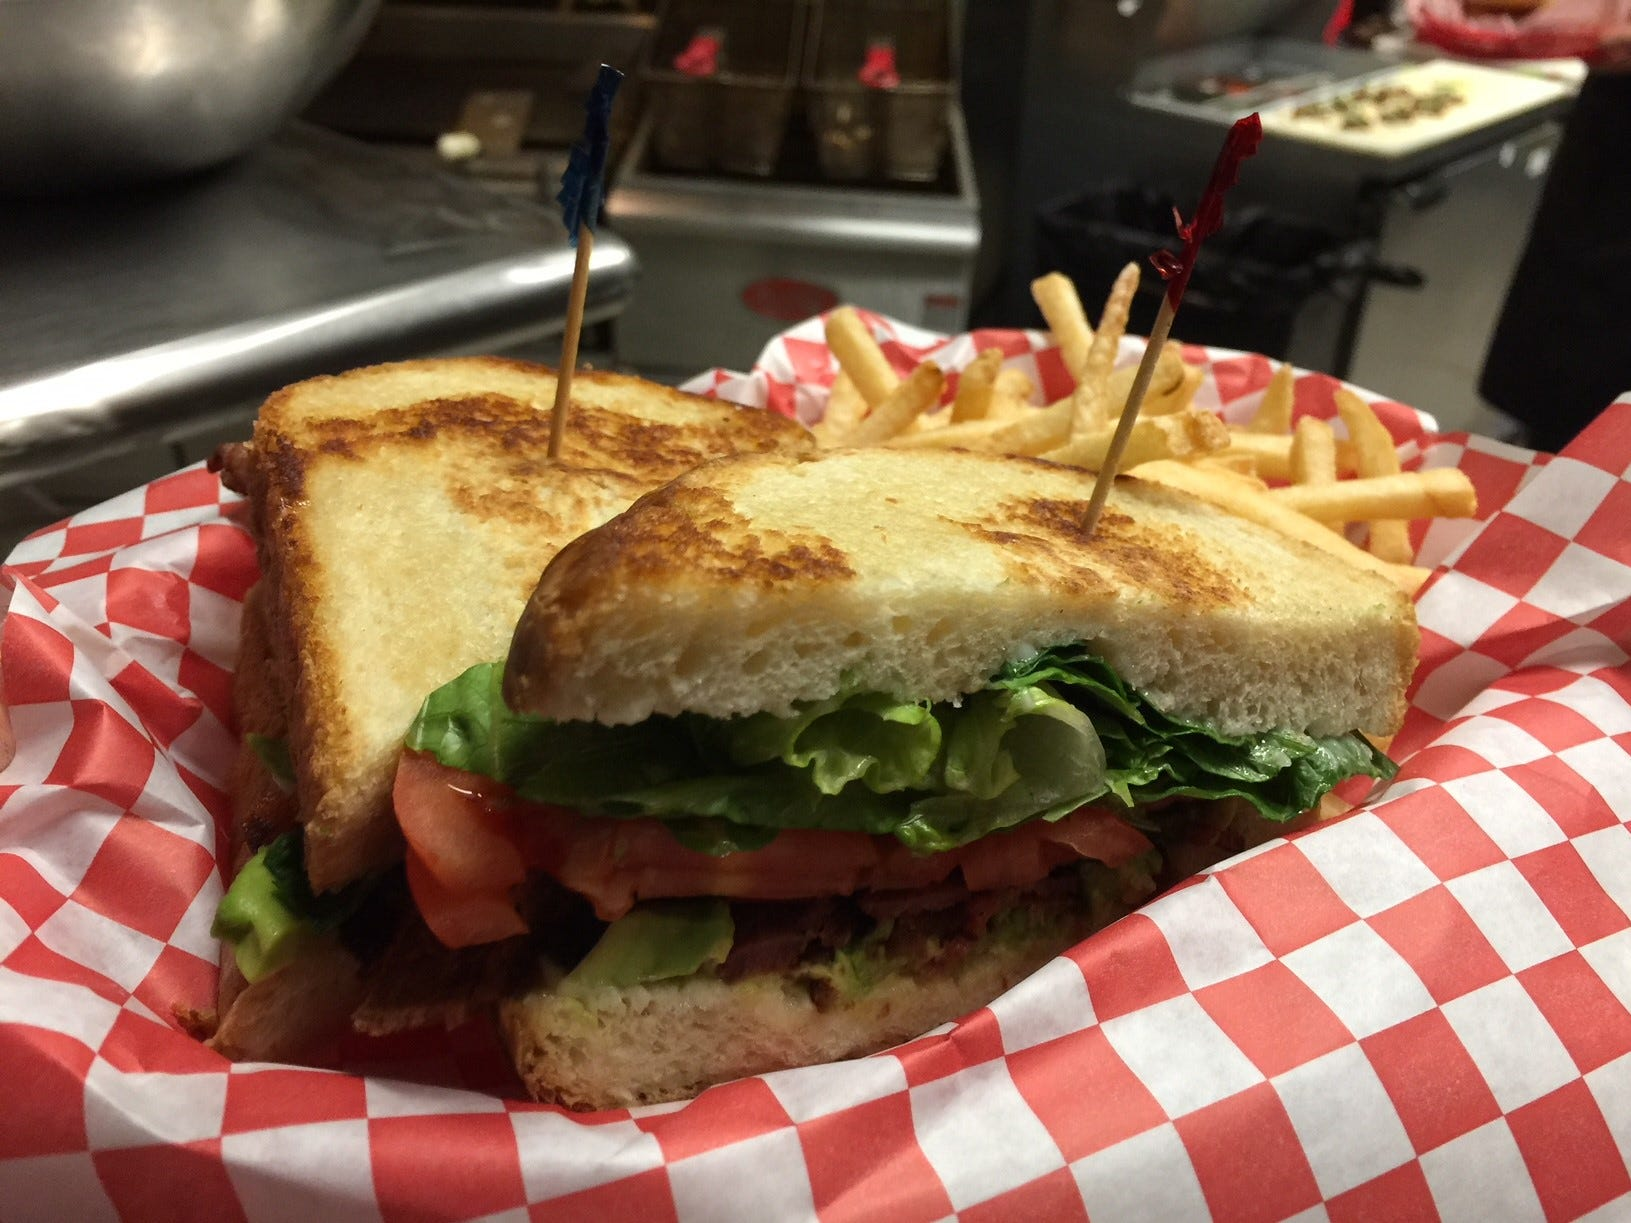 The BLAT sandwich at All Stars in east Redding.